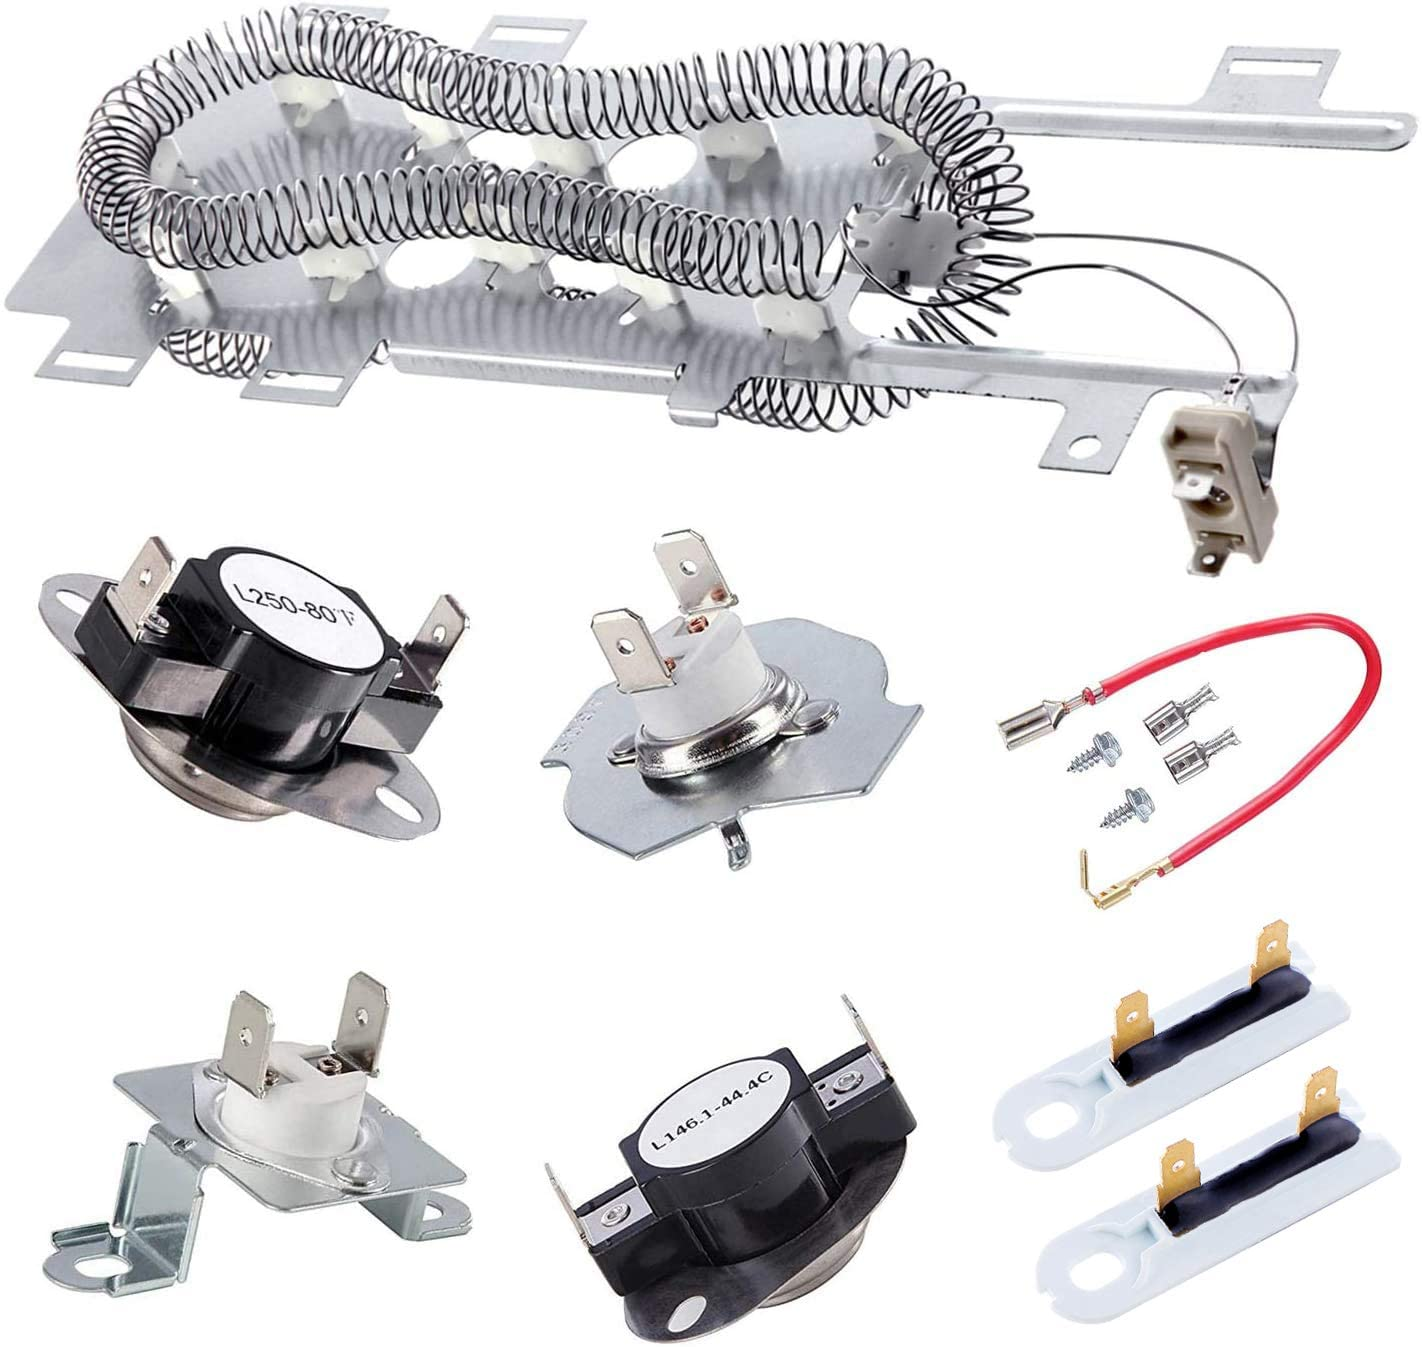 8544771 Dryer Heating Element, 279973 3392519 Thermal Fuse and 279816 Thermostat Cut Off Dryer Compatible with maytag, kenmore and More